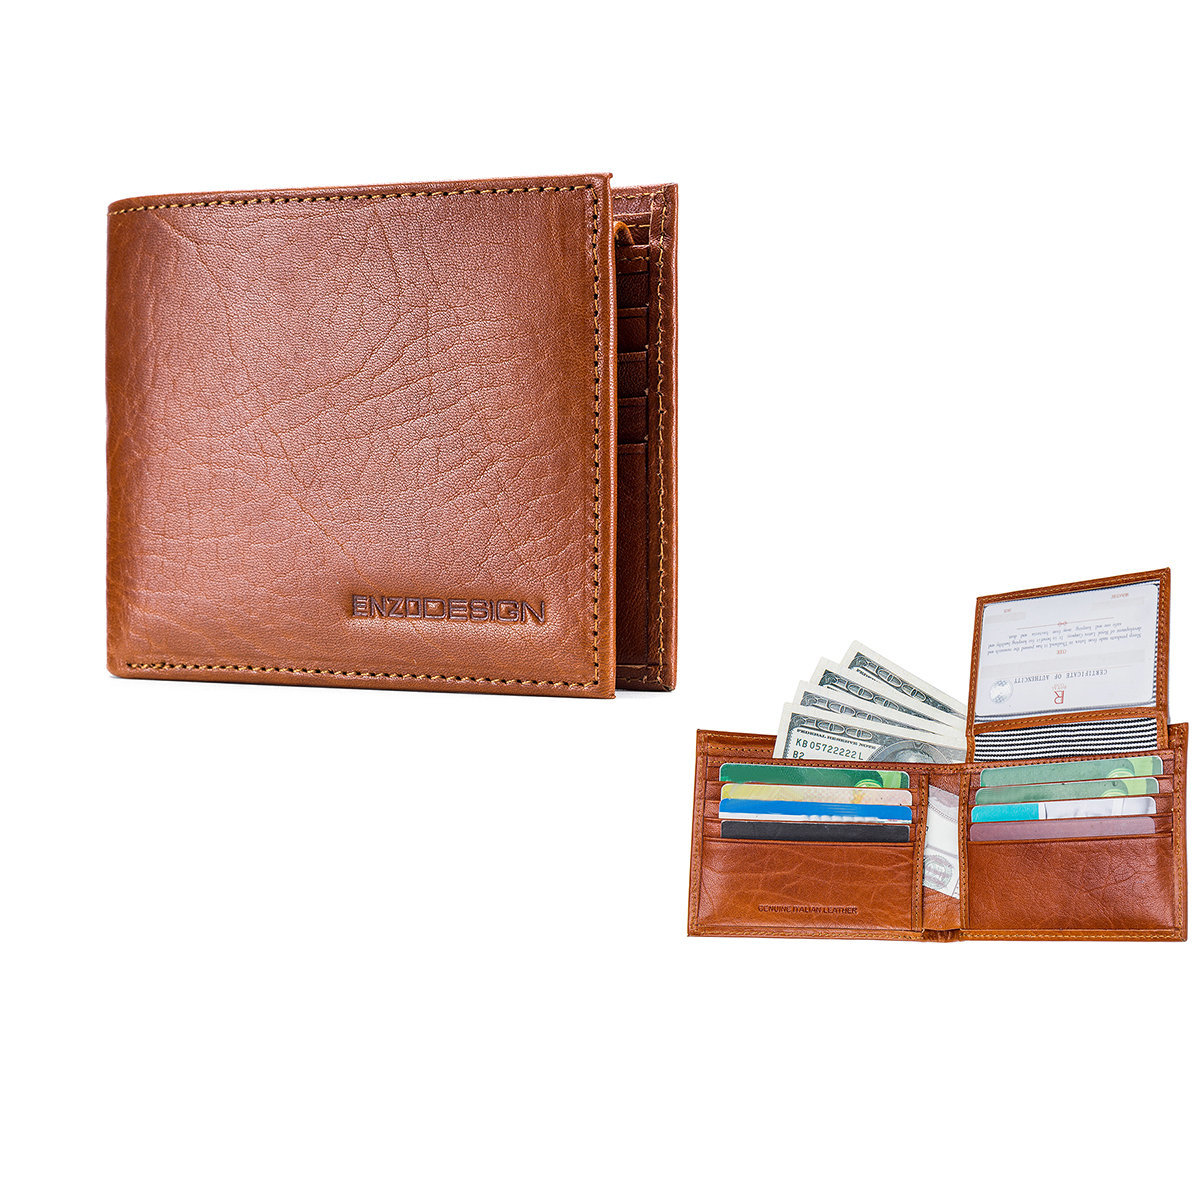 ENZODESIGN Italian Leather Slim Bi-fold Wallet With 8 Card slots and Flip over I.D. Windows